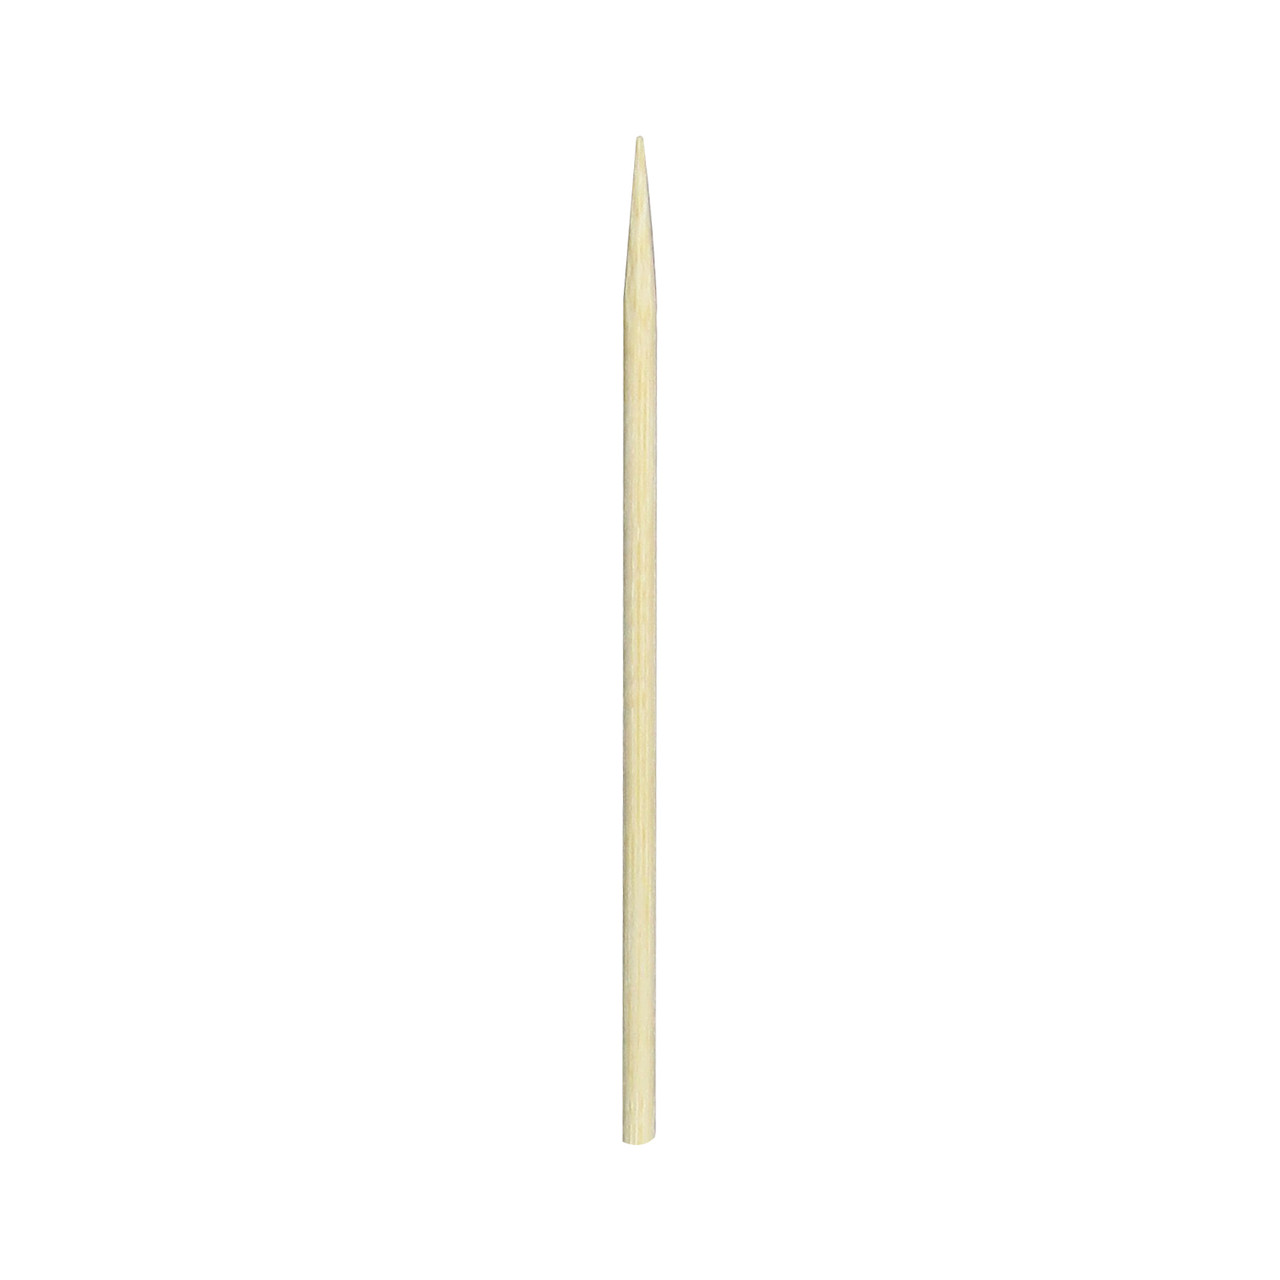 Bamboo Bbq Skewers - Dia:.1in L:3.9in